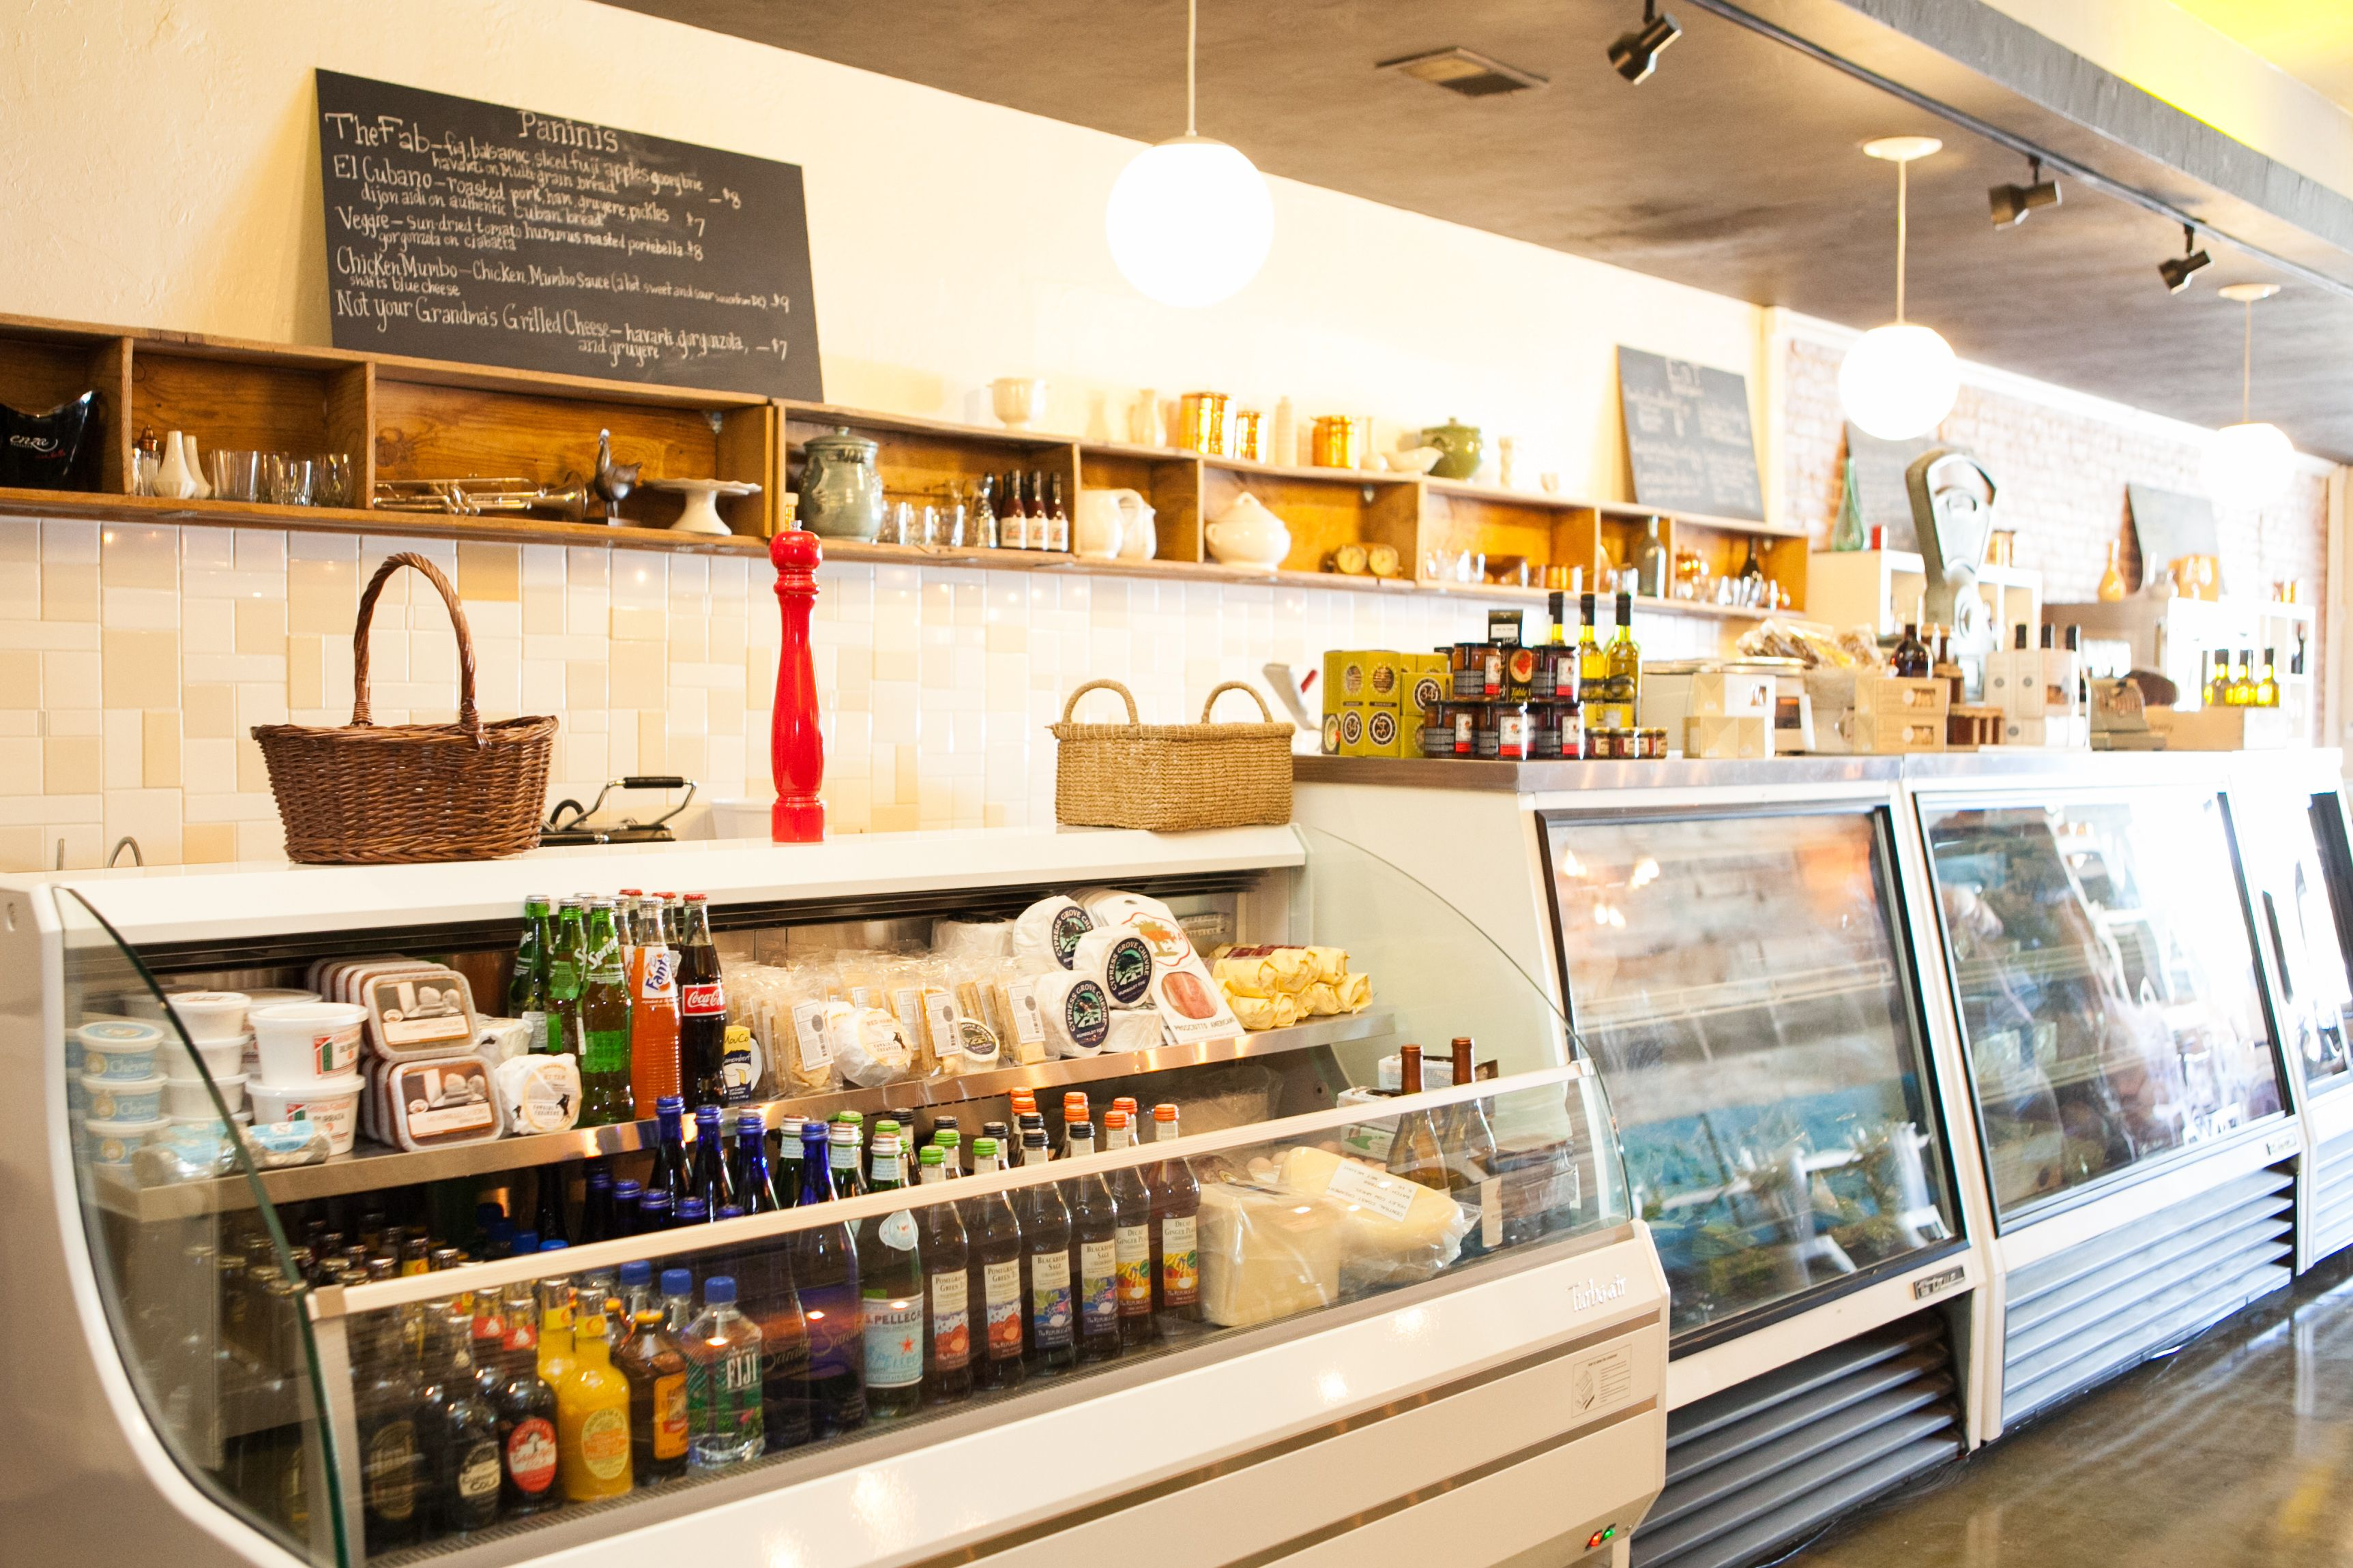 Deli counter. | Mile Wine Company Inside & Out | Pinterest ...